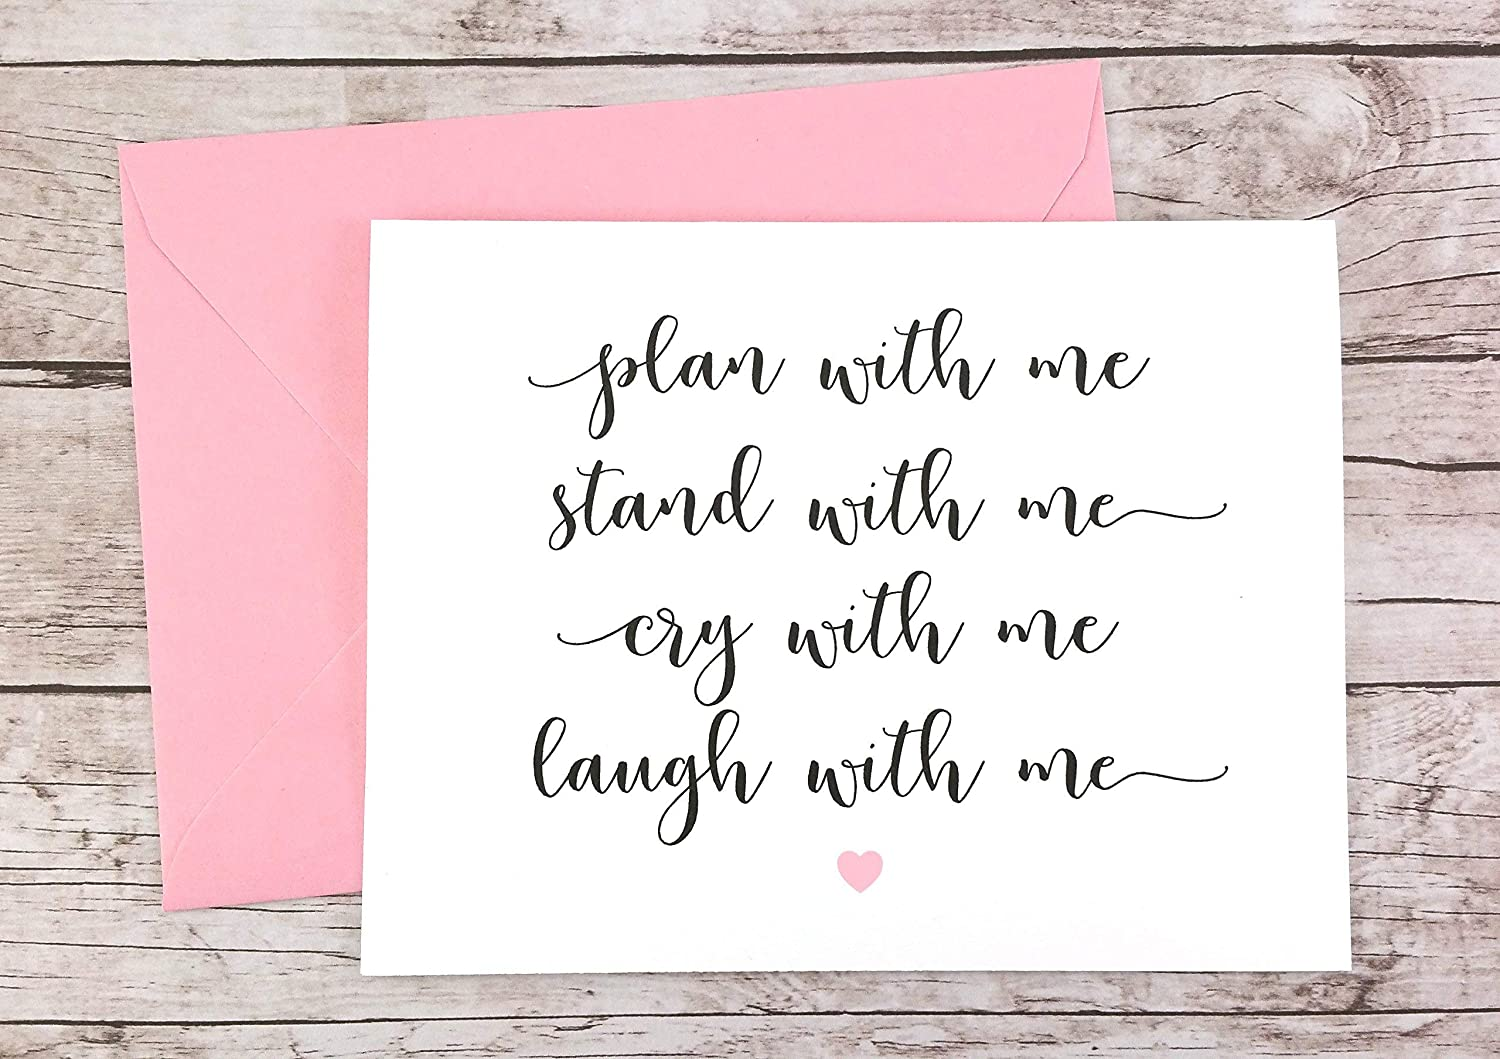 It's just a picture of Free Printable Bridesmaid Proposal inside poem